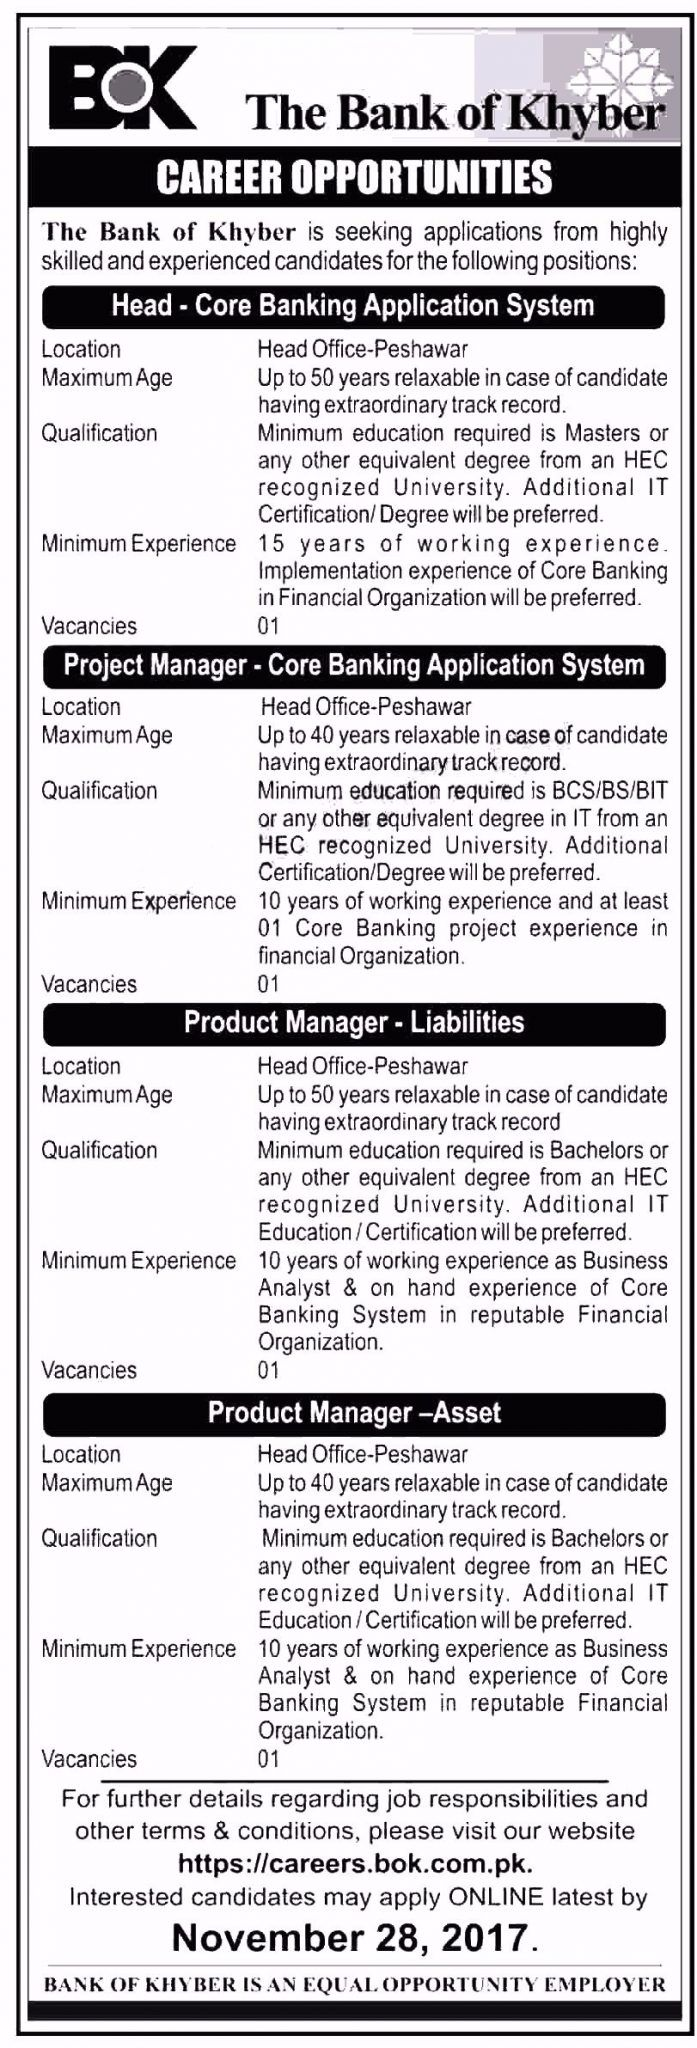 The Bank Of Khyber Bok Jobs  For Project And Product Managers